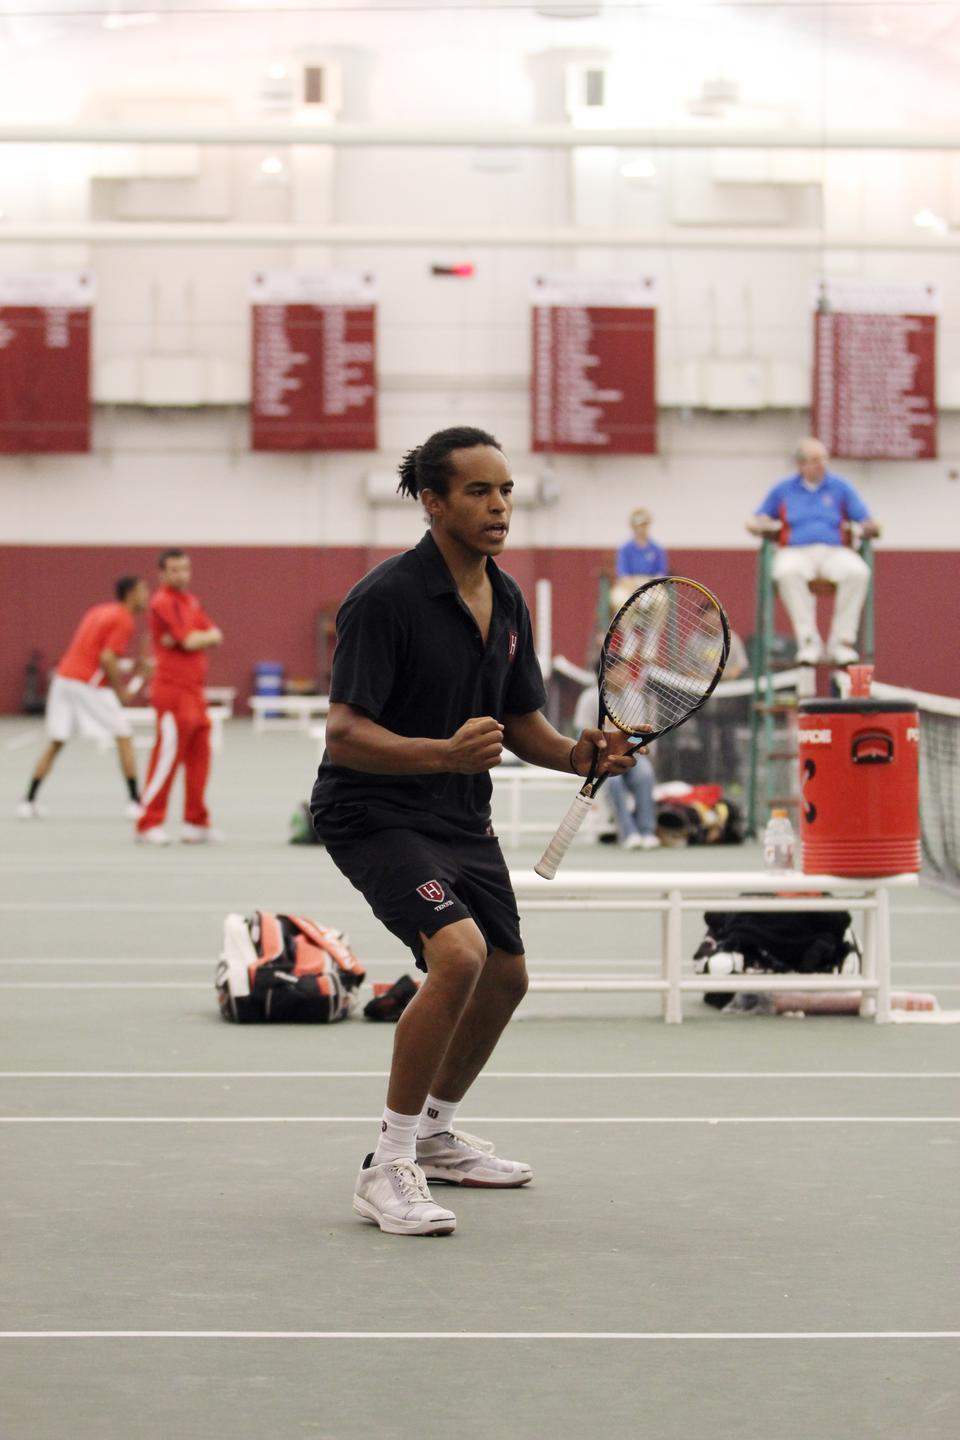 Though he and Casey MacMaster lost twice at the top doubles position, captain Aba Omedele-Lucien—shown here in previous play—took down the No. 2 singles player of both Penn and Princeton this weekend. Harvard pulled away for a 5-2 win against the Quakers Saturday but lost yesterday to Princeton.